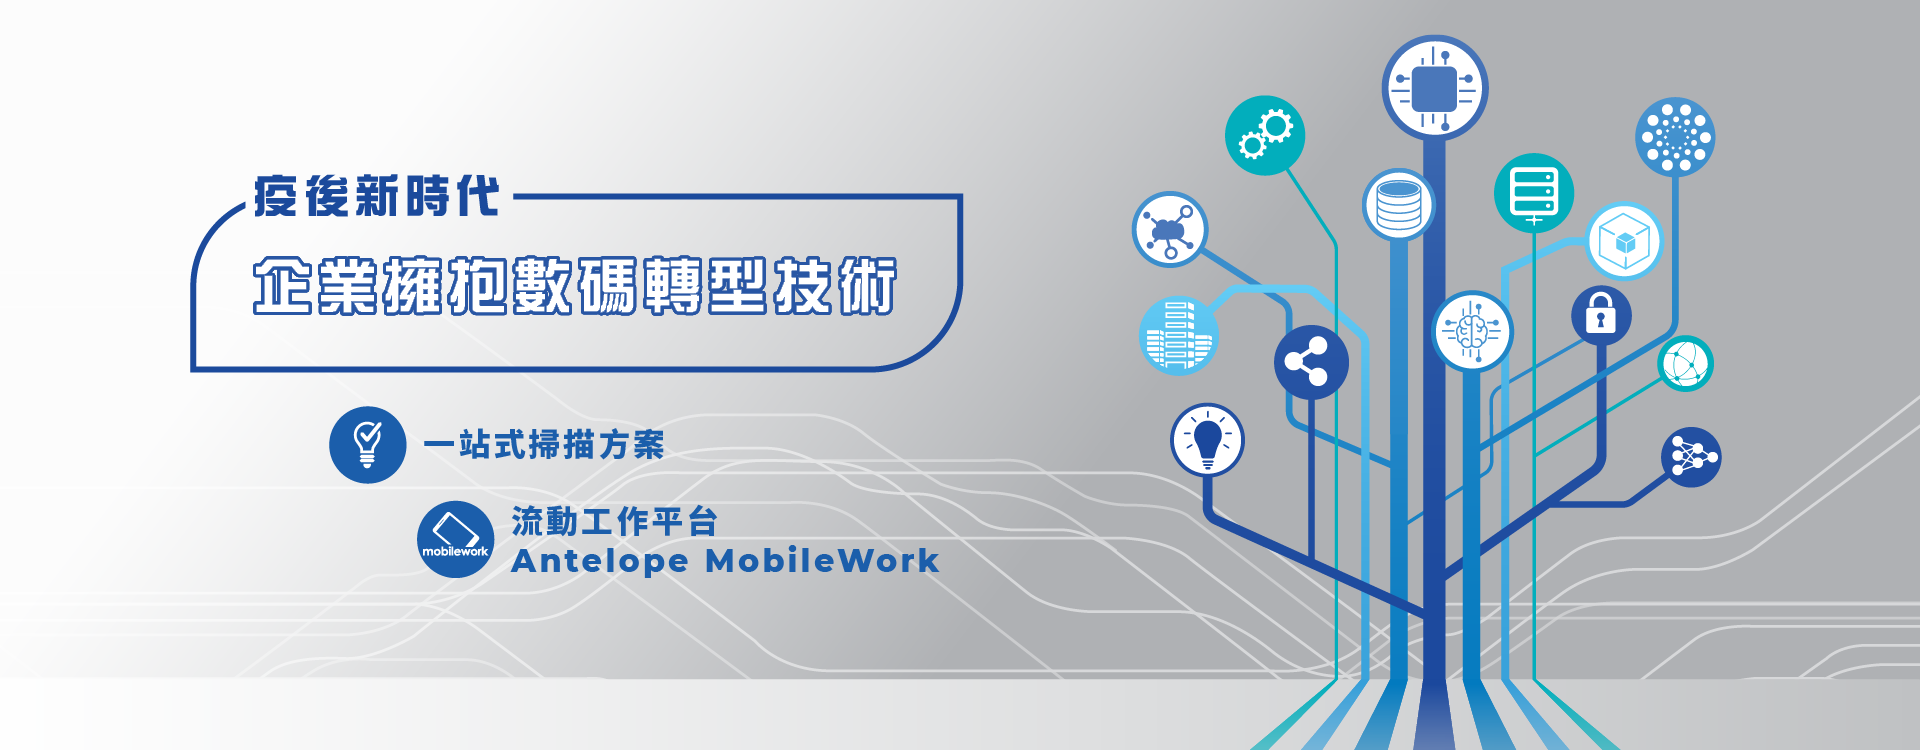 Scanning and MobileWork Promo Banner TC